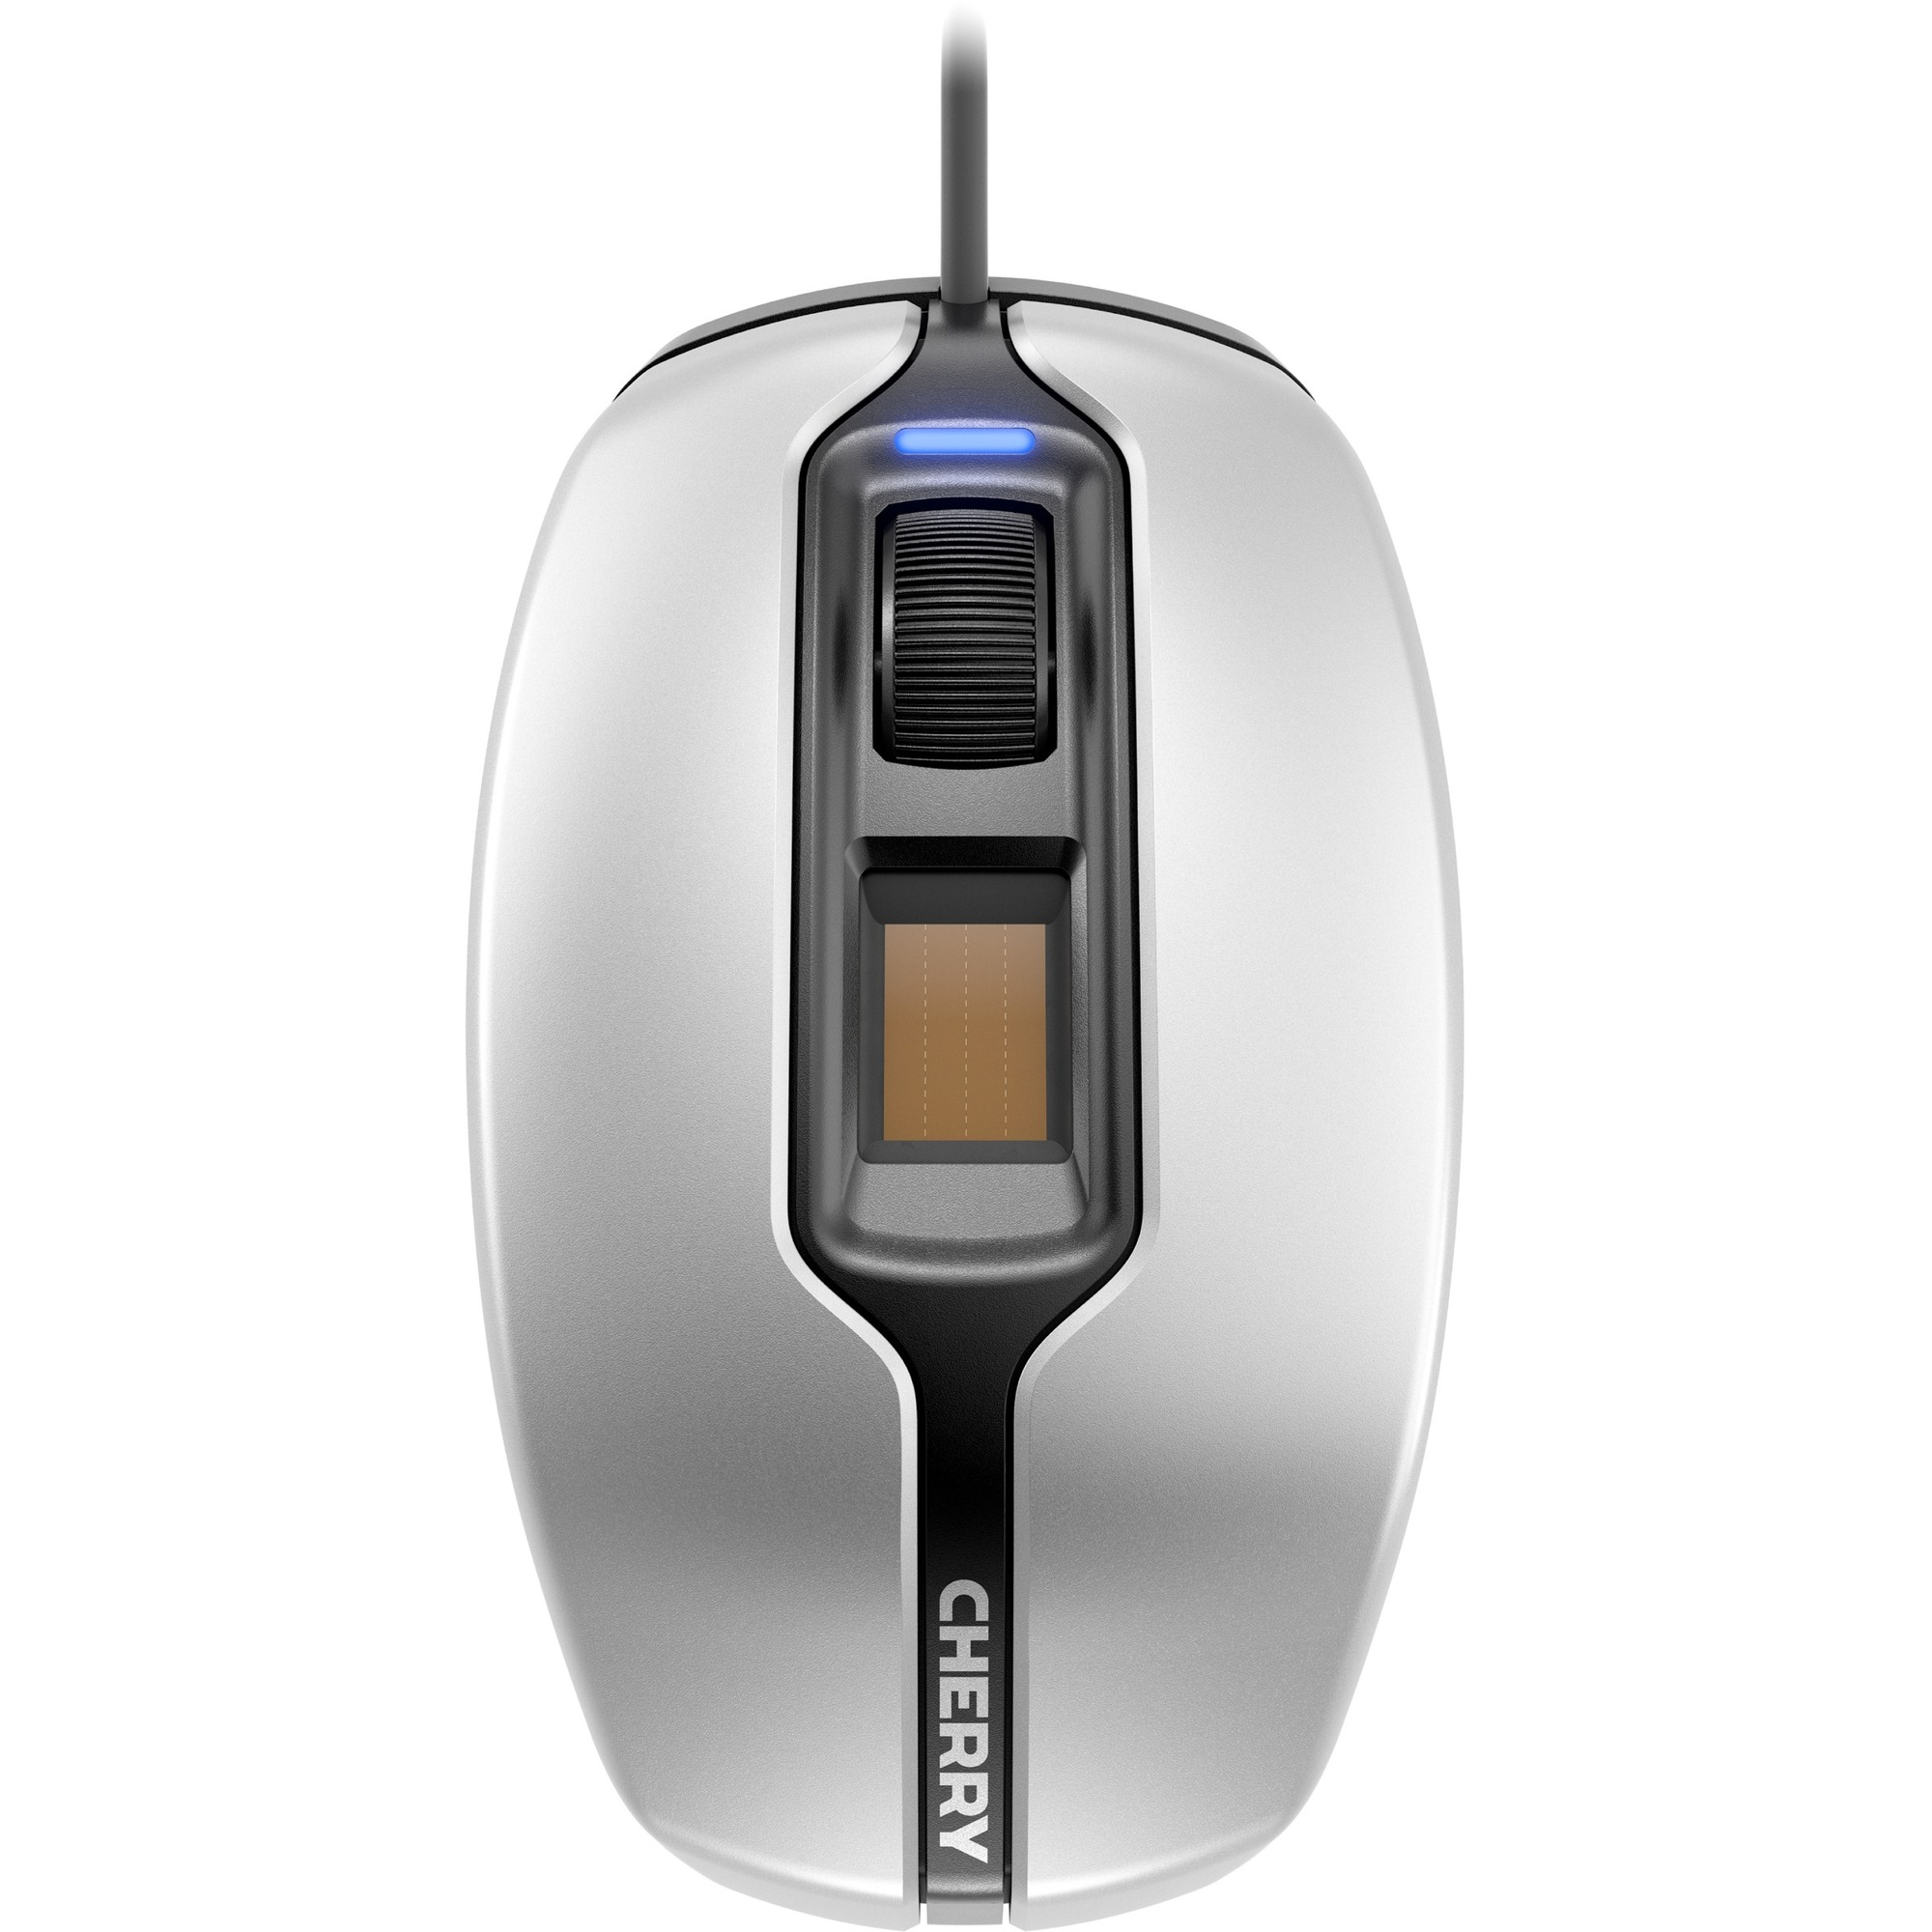 Cherry MC 4900 Mouse - Optical - Cable - 3 Buttons - Silver, Black